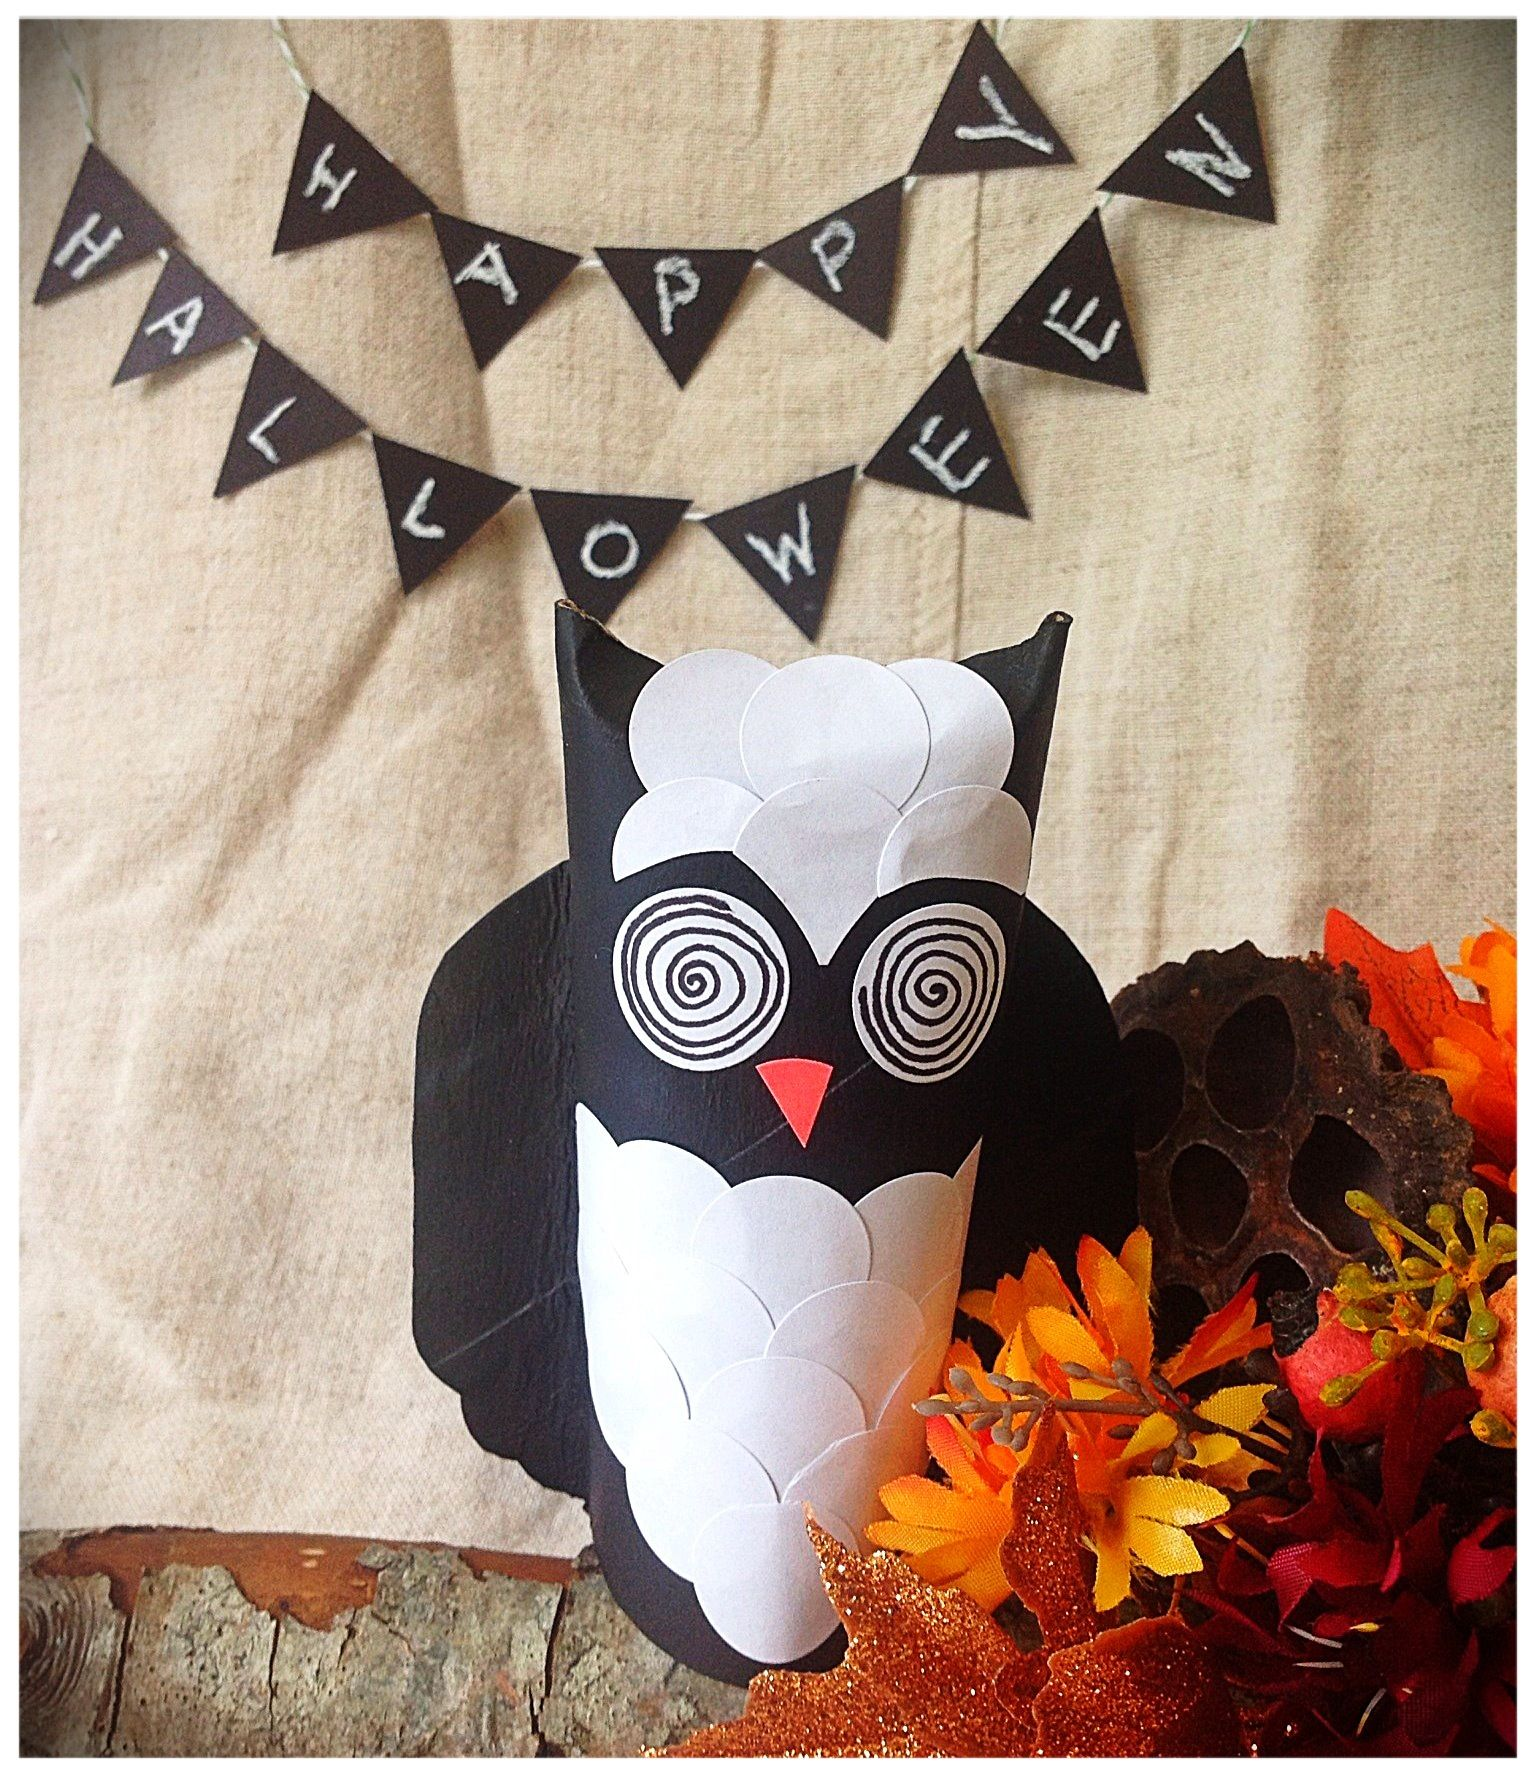 Diy halloween decoration made out of toilet paper roll paper diy halloween decoration made out of toilet paper roll paper craft jeuxipadfo Image collections